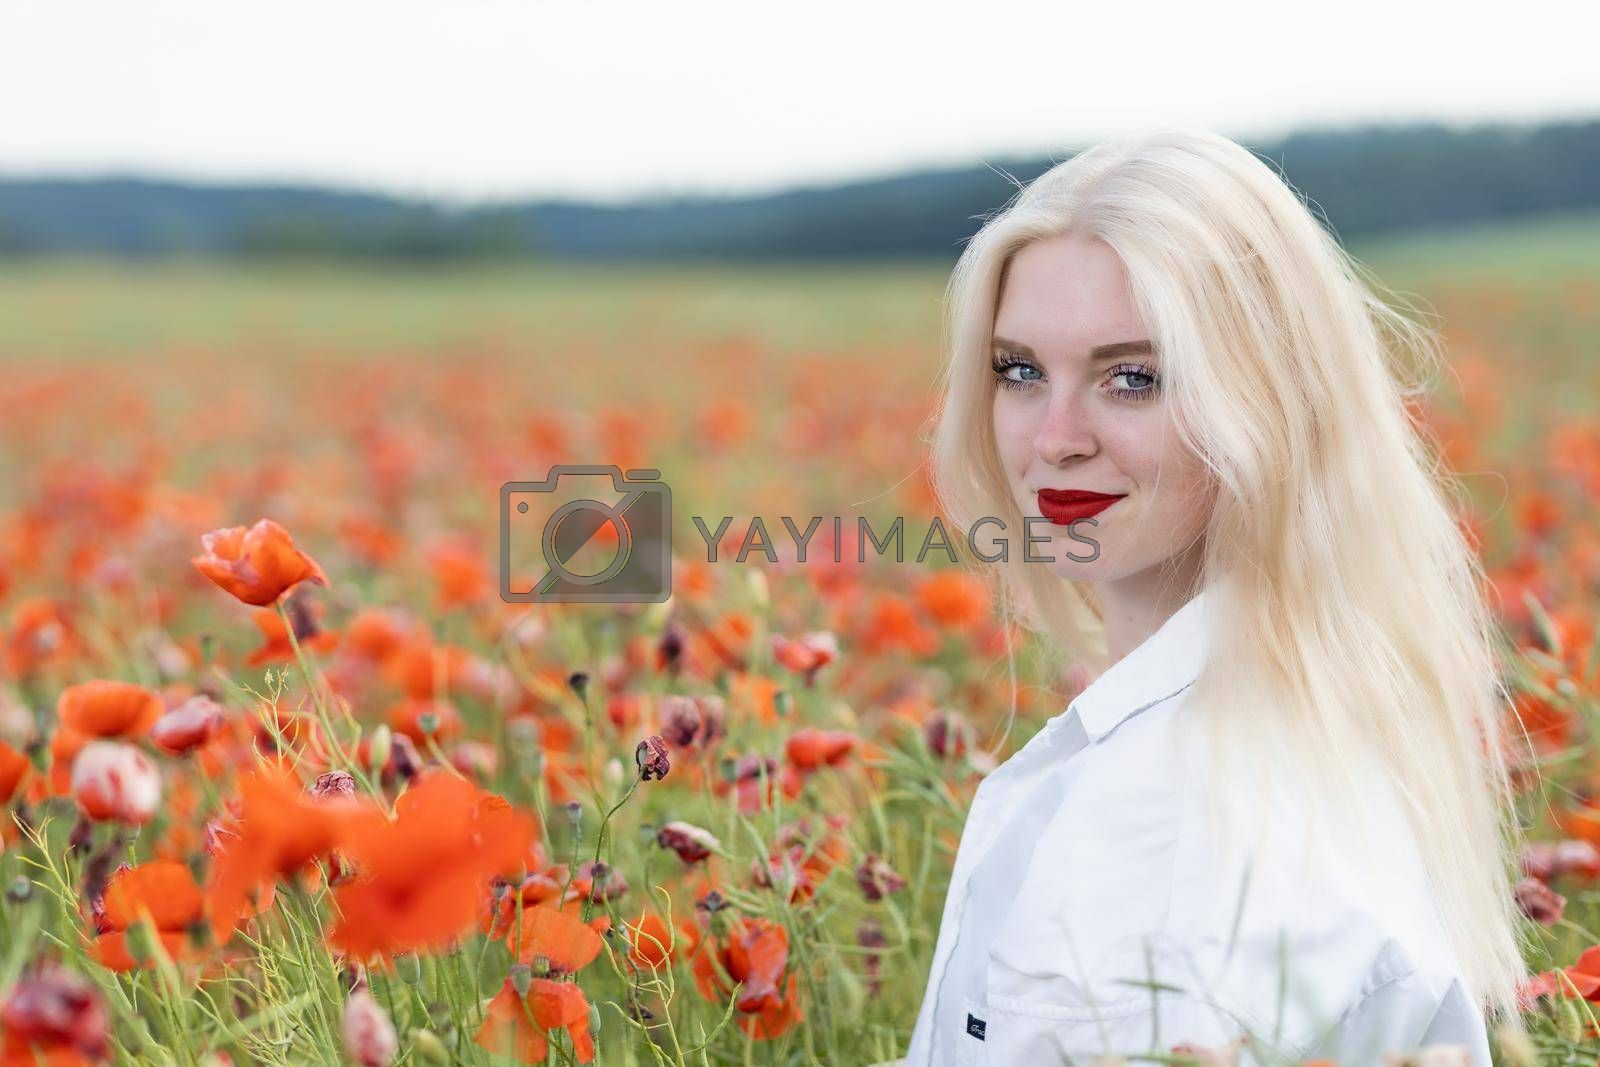 Royalty free image of Portrait of blonde young woman posing in red poppy field.  by Frank11